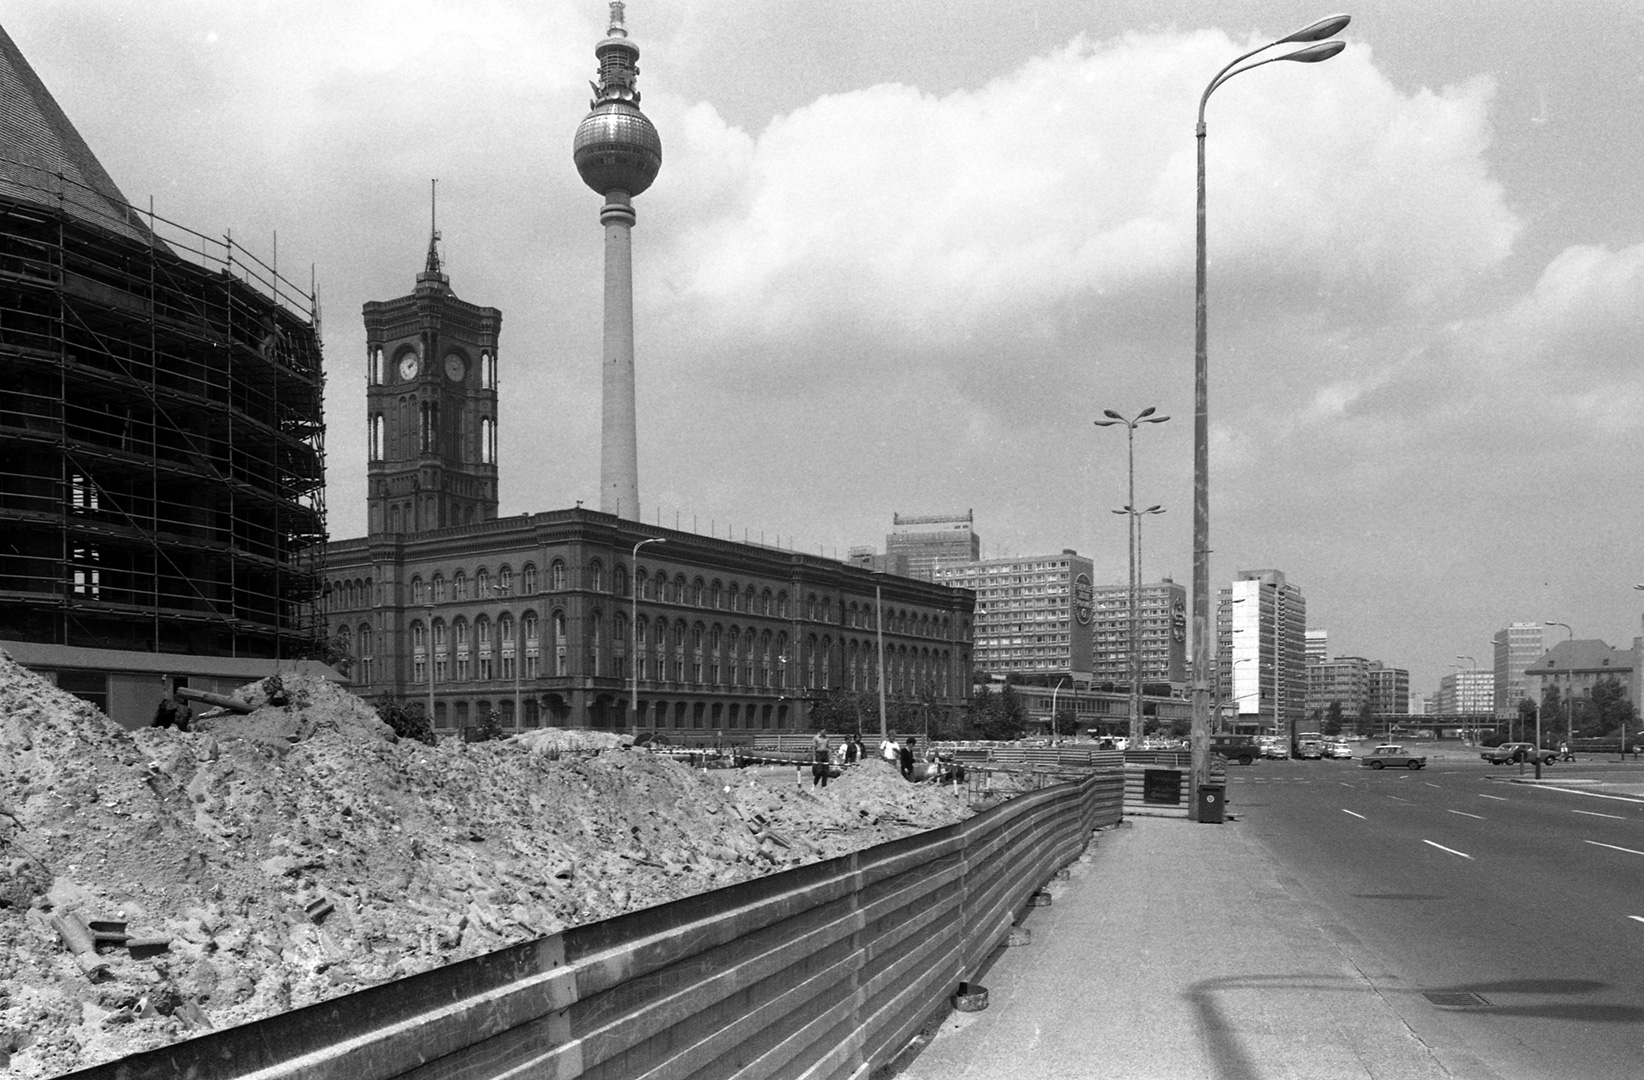 east-berlin-1983_04_Berlino-Est-30